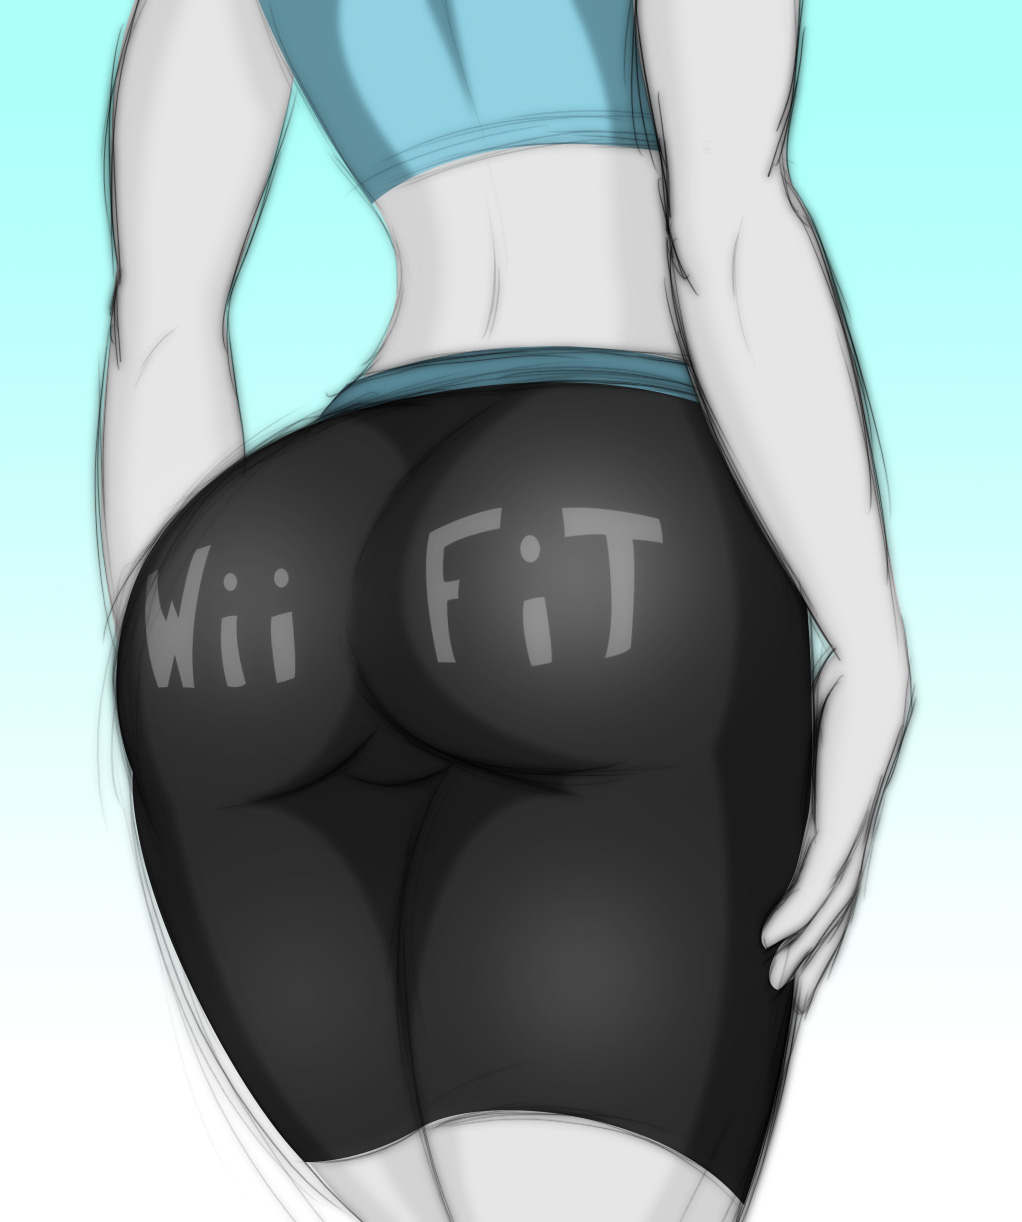 wii up trainer fit tied How to get demon hunter sombra